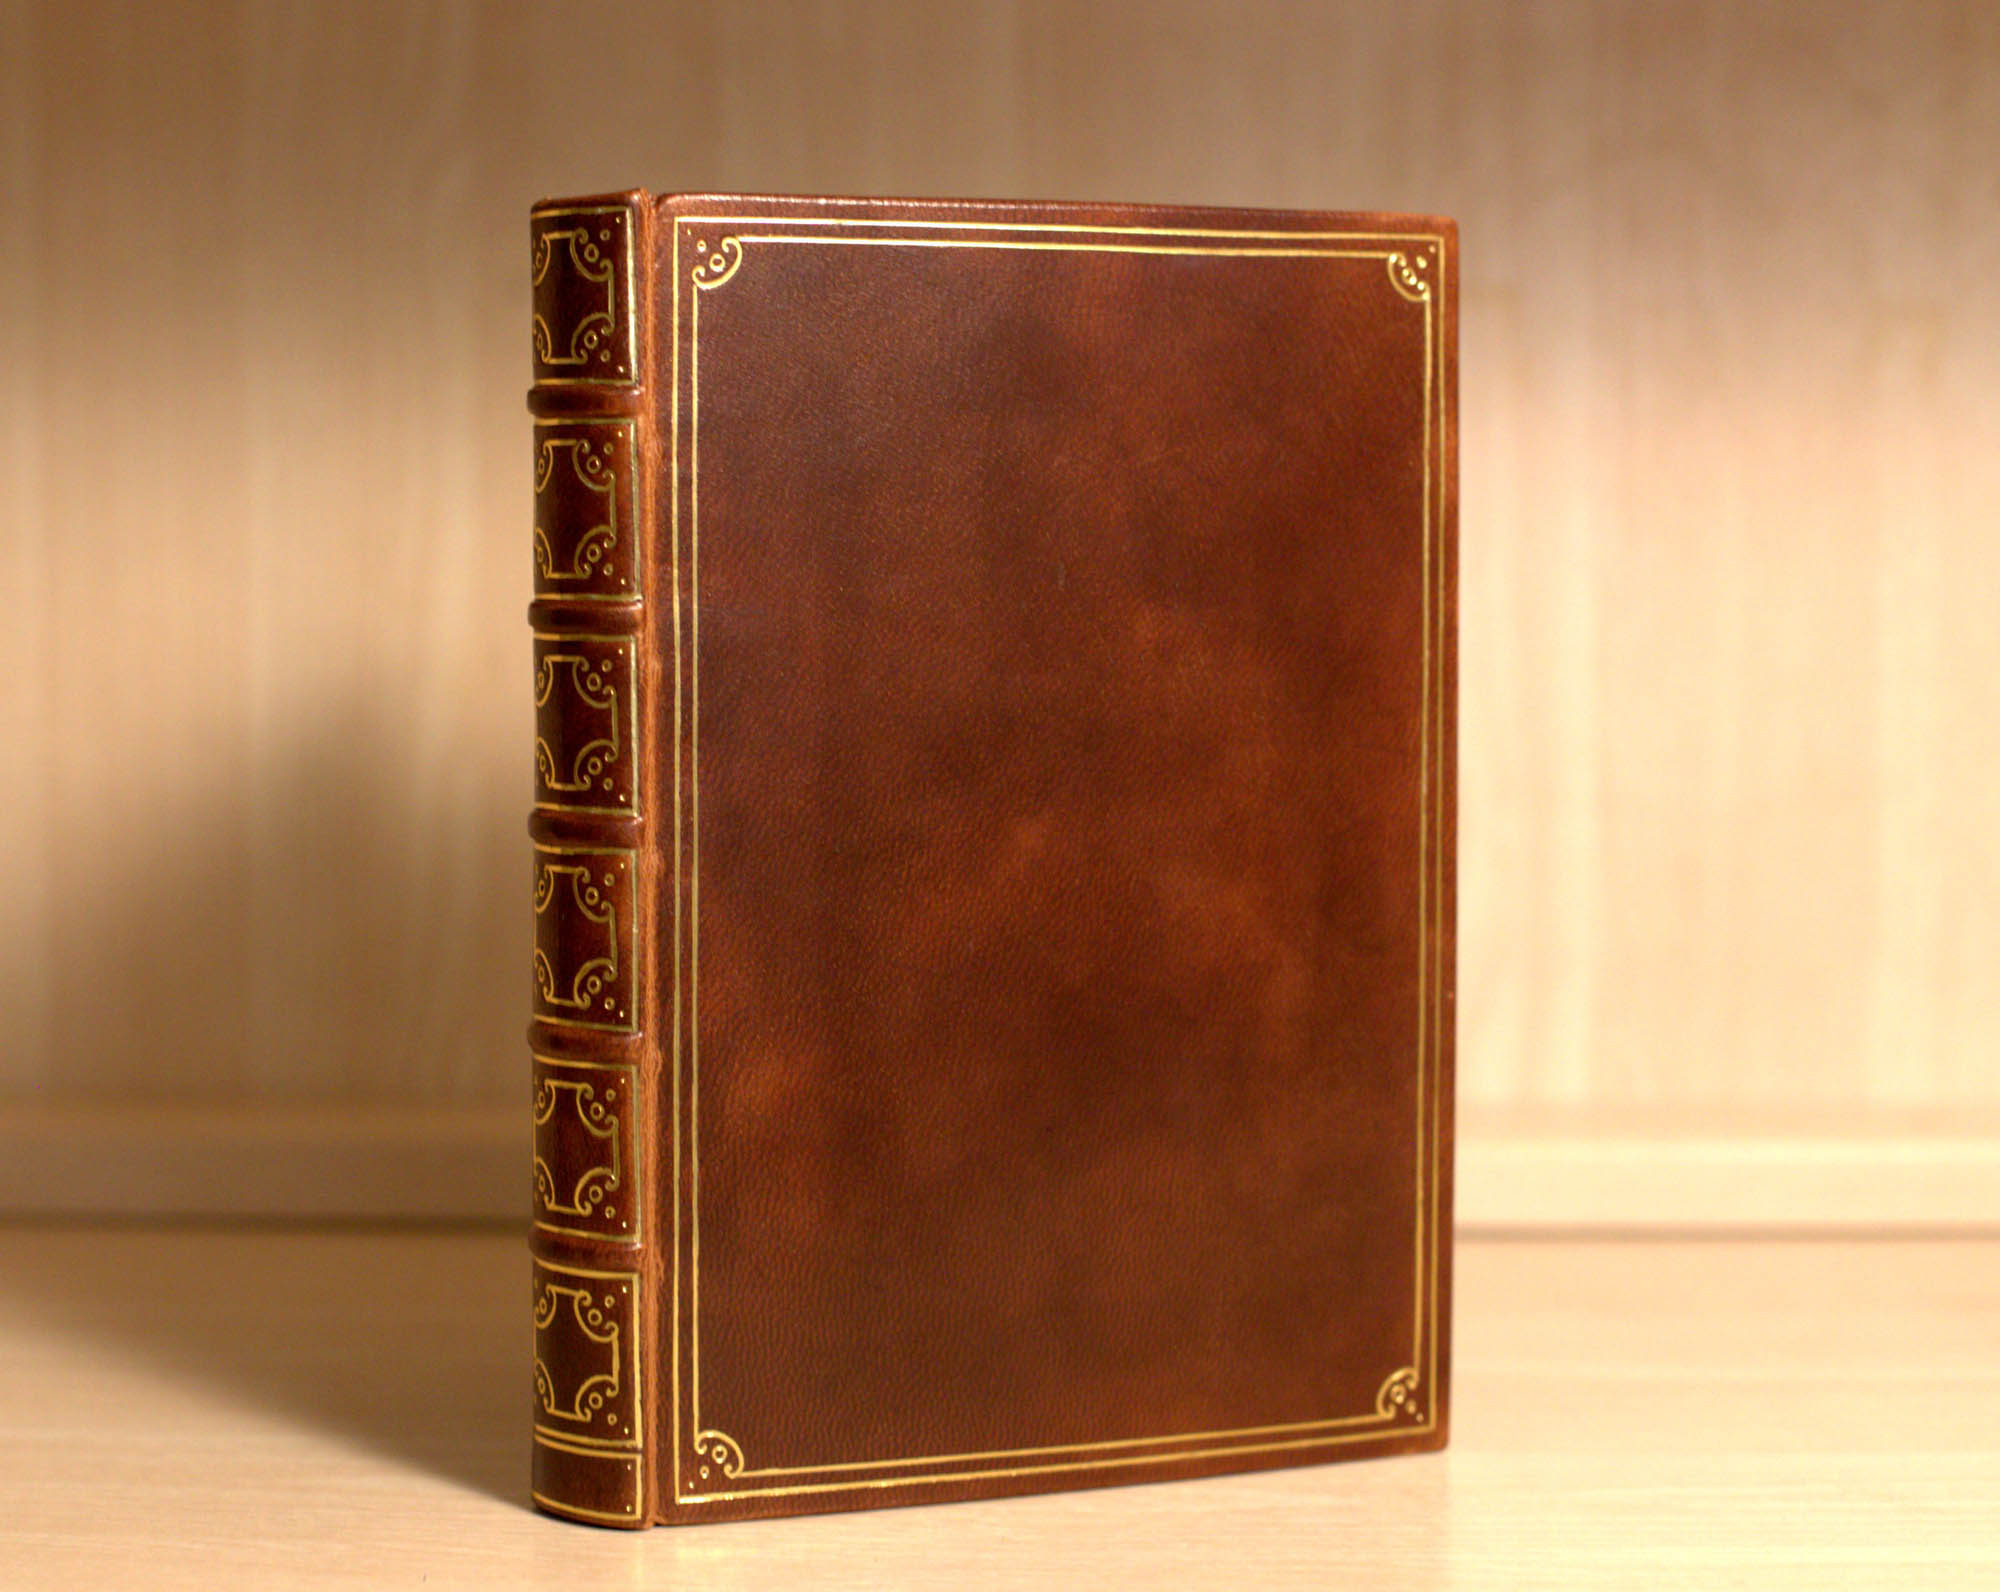 Leather Book Cover ~ Plain leather book cover pixshark images